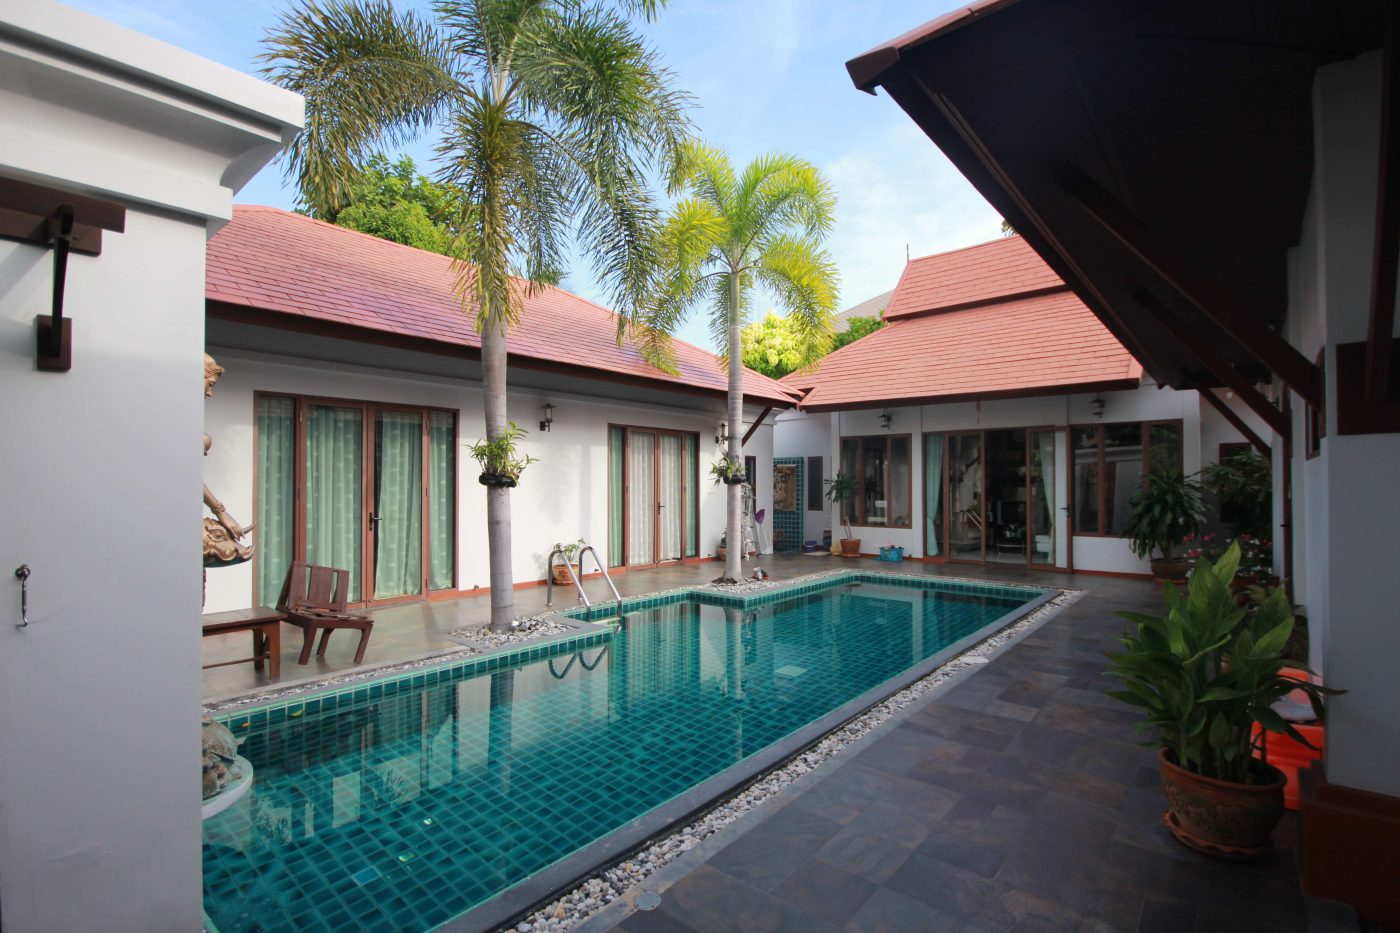 Bali Style 5 Bed Pool Villa for Sale at Lavallee Light, Soi 70